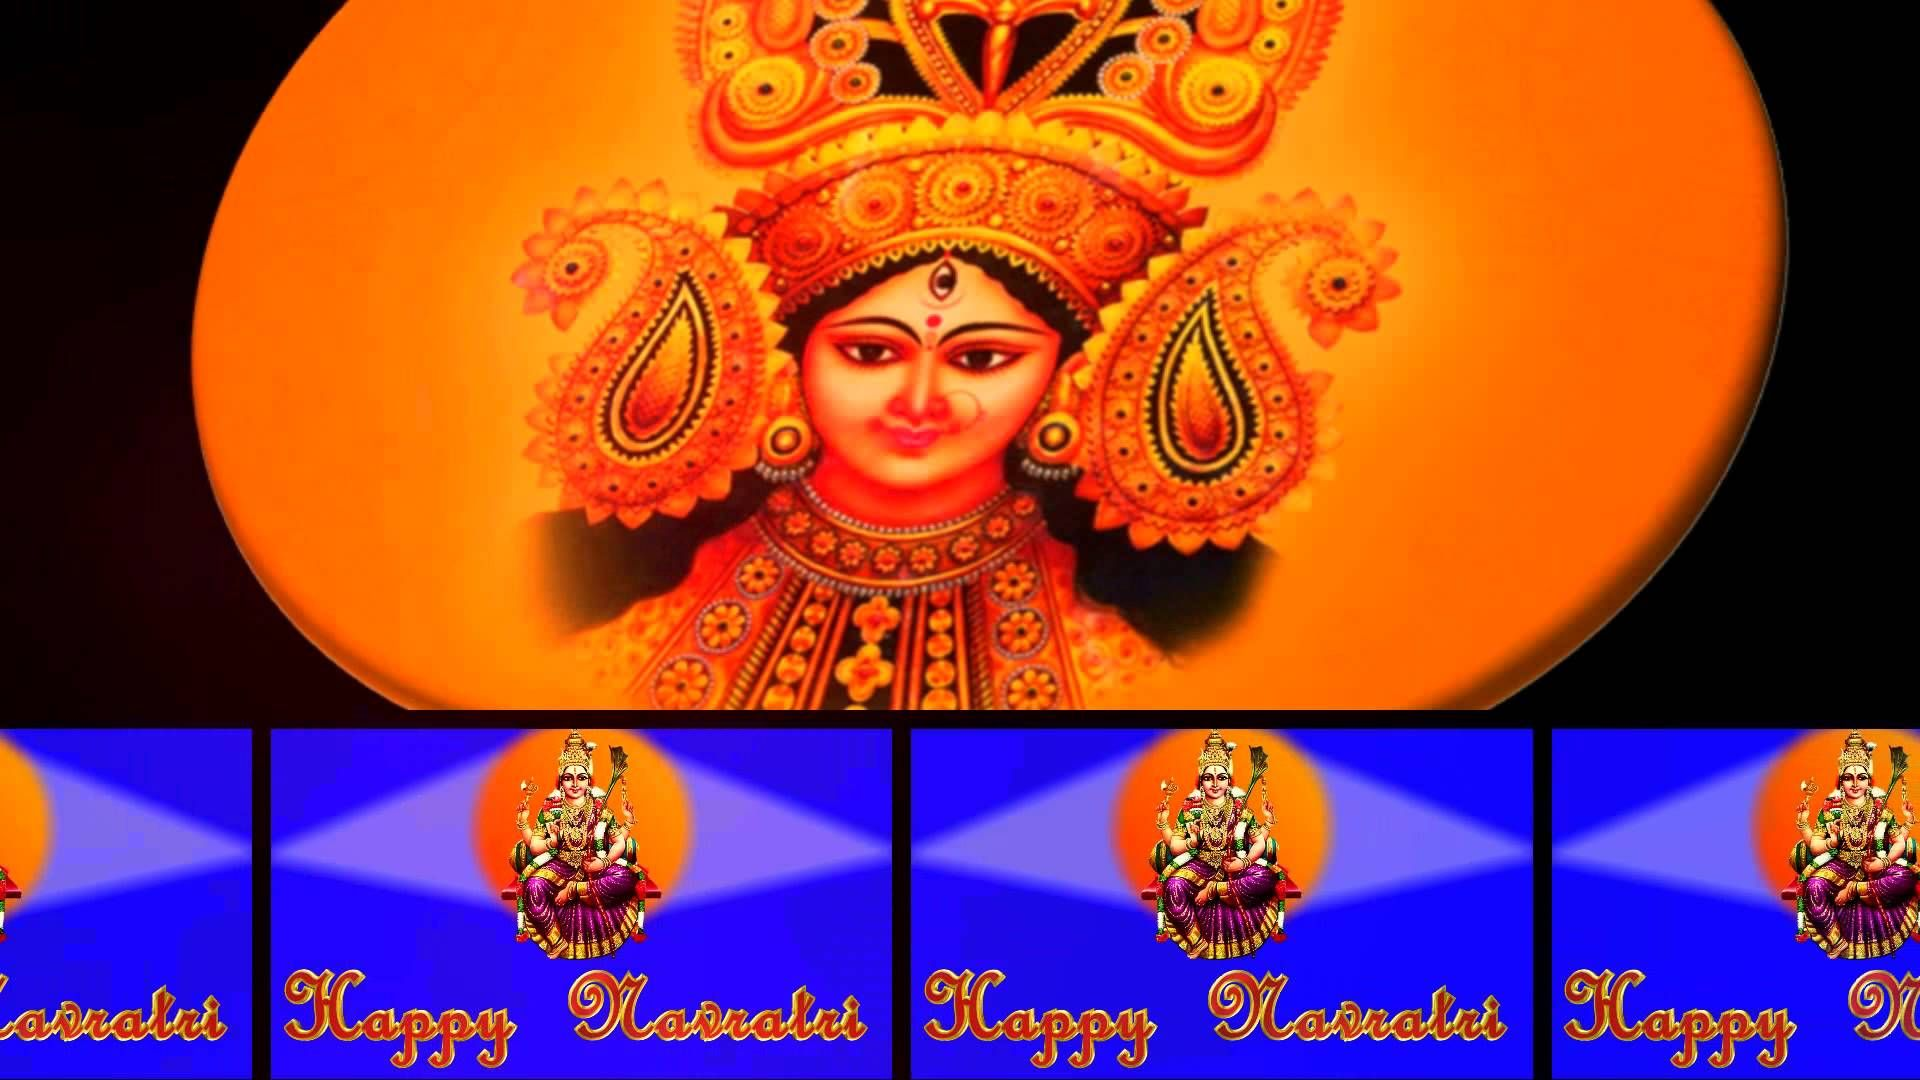 Navaratri wishes greetings e cards whatsapp videohappy navratri navaratri wishes greetings e cards whatsapp videohappy navratri in malayalam youtube malayalam whatsapp video greetings pinterest happy navratri kristyandbryce Choice Image